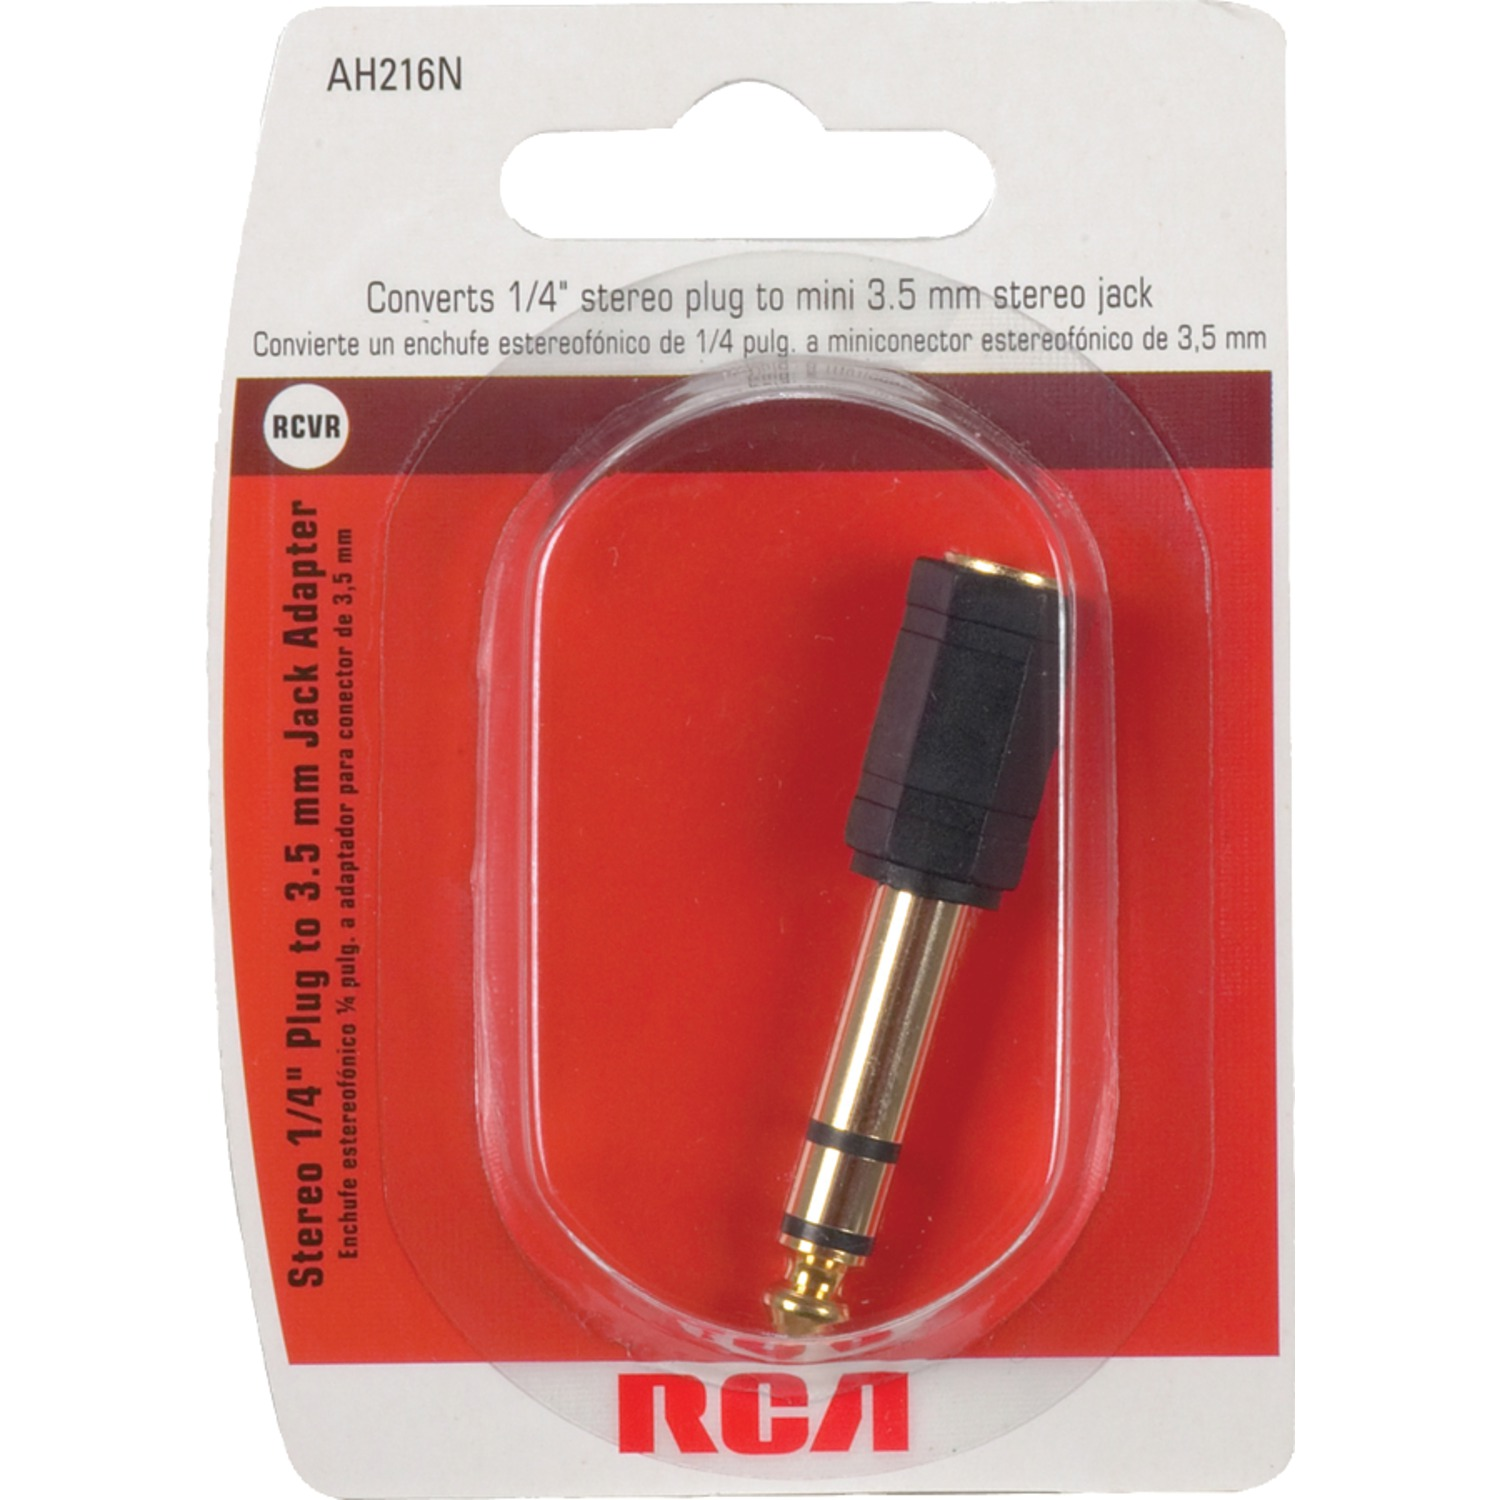 Rca Ah216r 35mm Jack To 1 4 Plug Adapter 14 Stereo Wiring